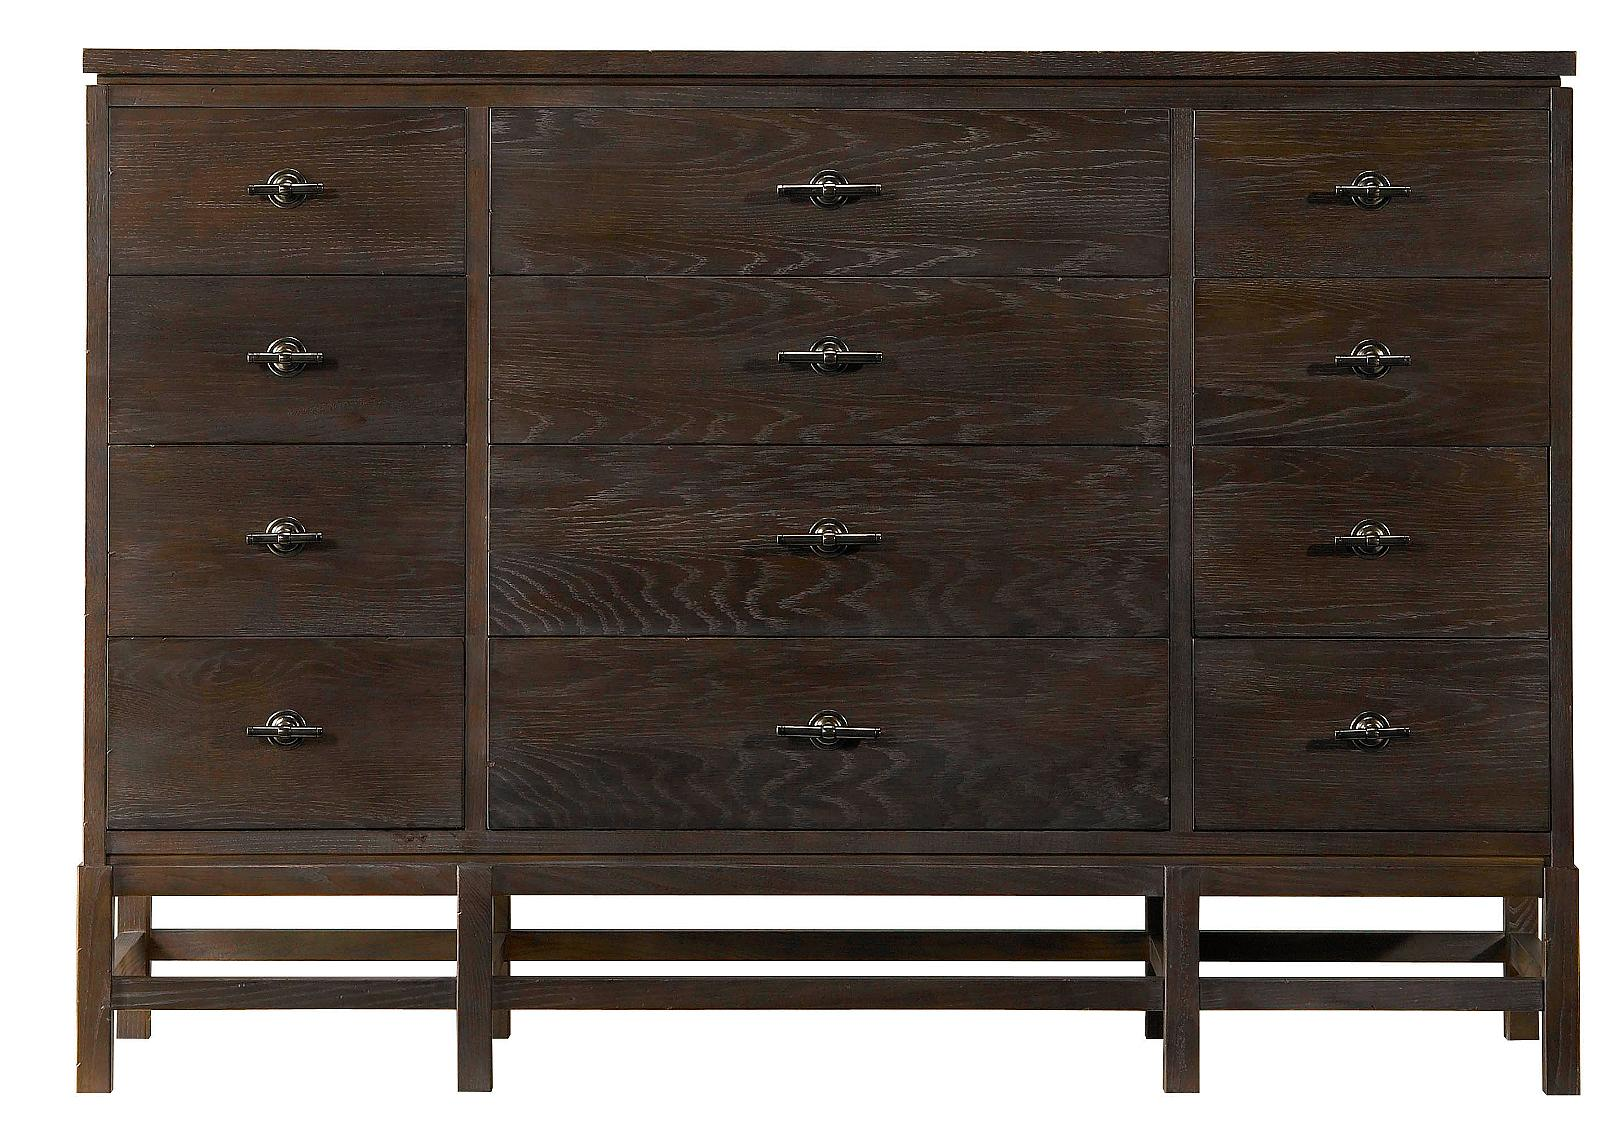 Stanley Furniture Coastal Living Resort Tranquility Isle Dresser - Item Number: 062-13-06